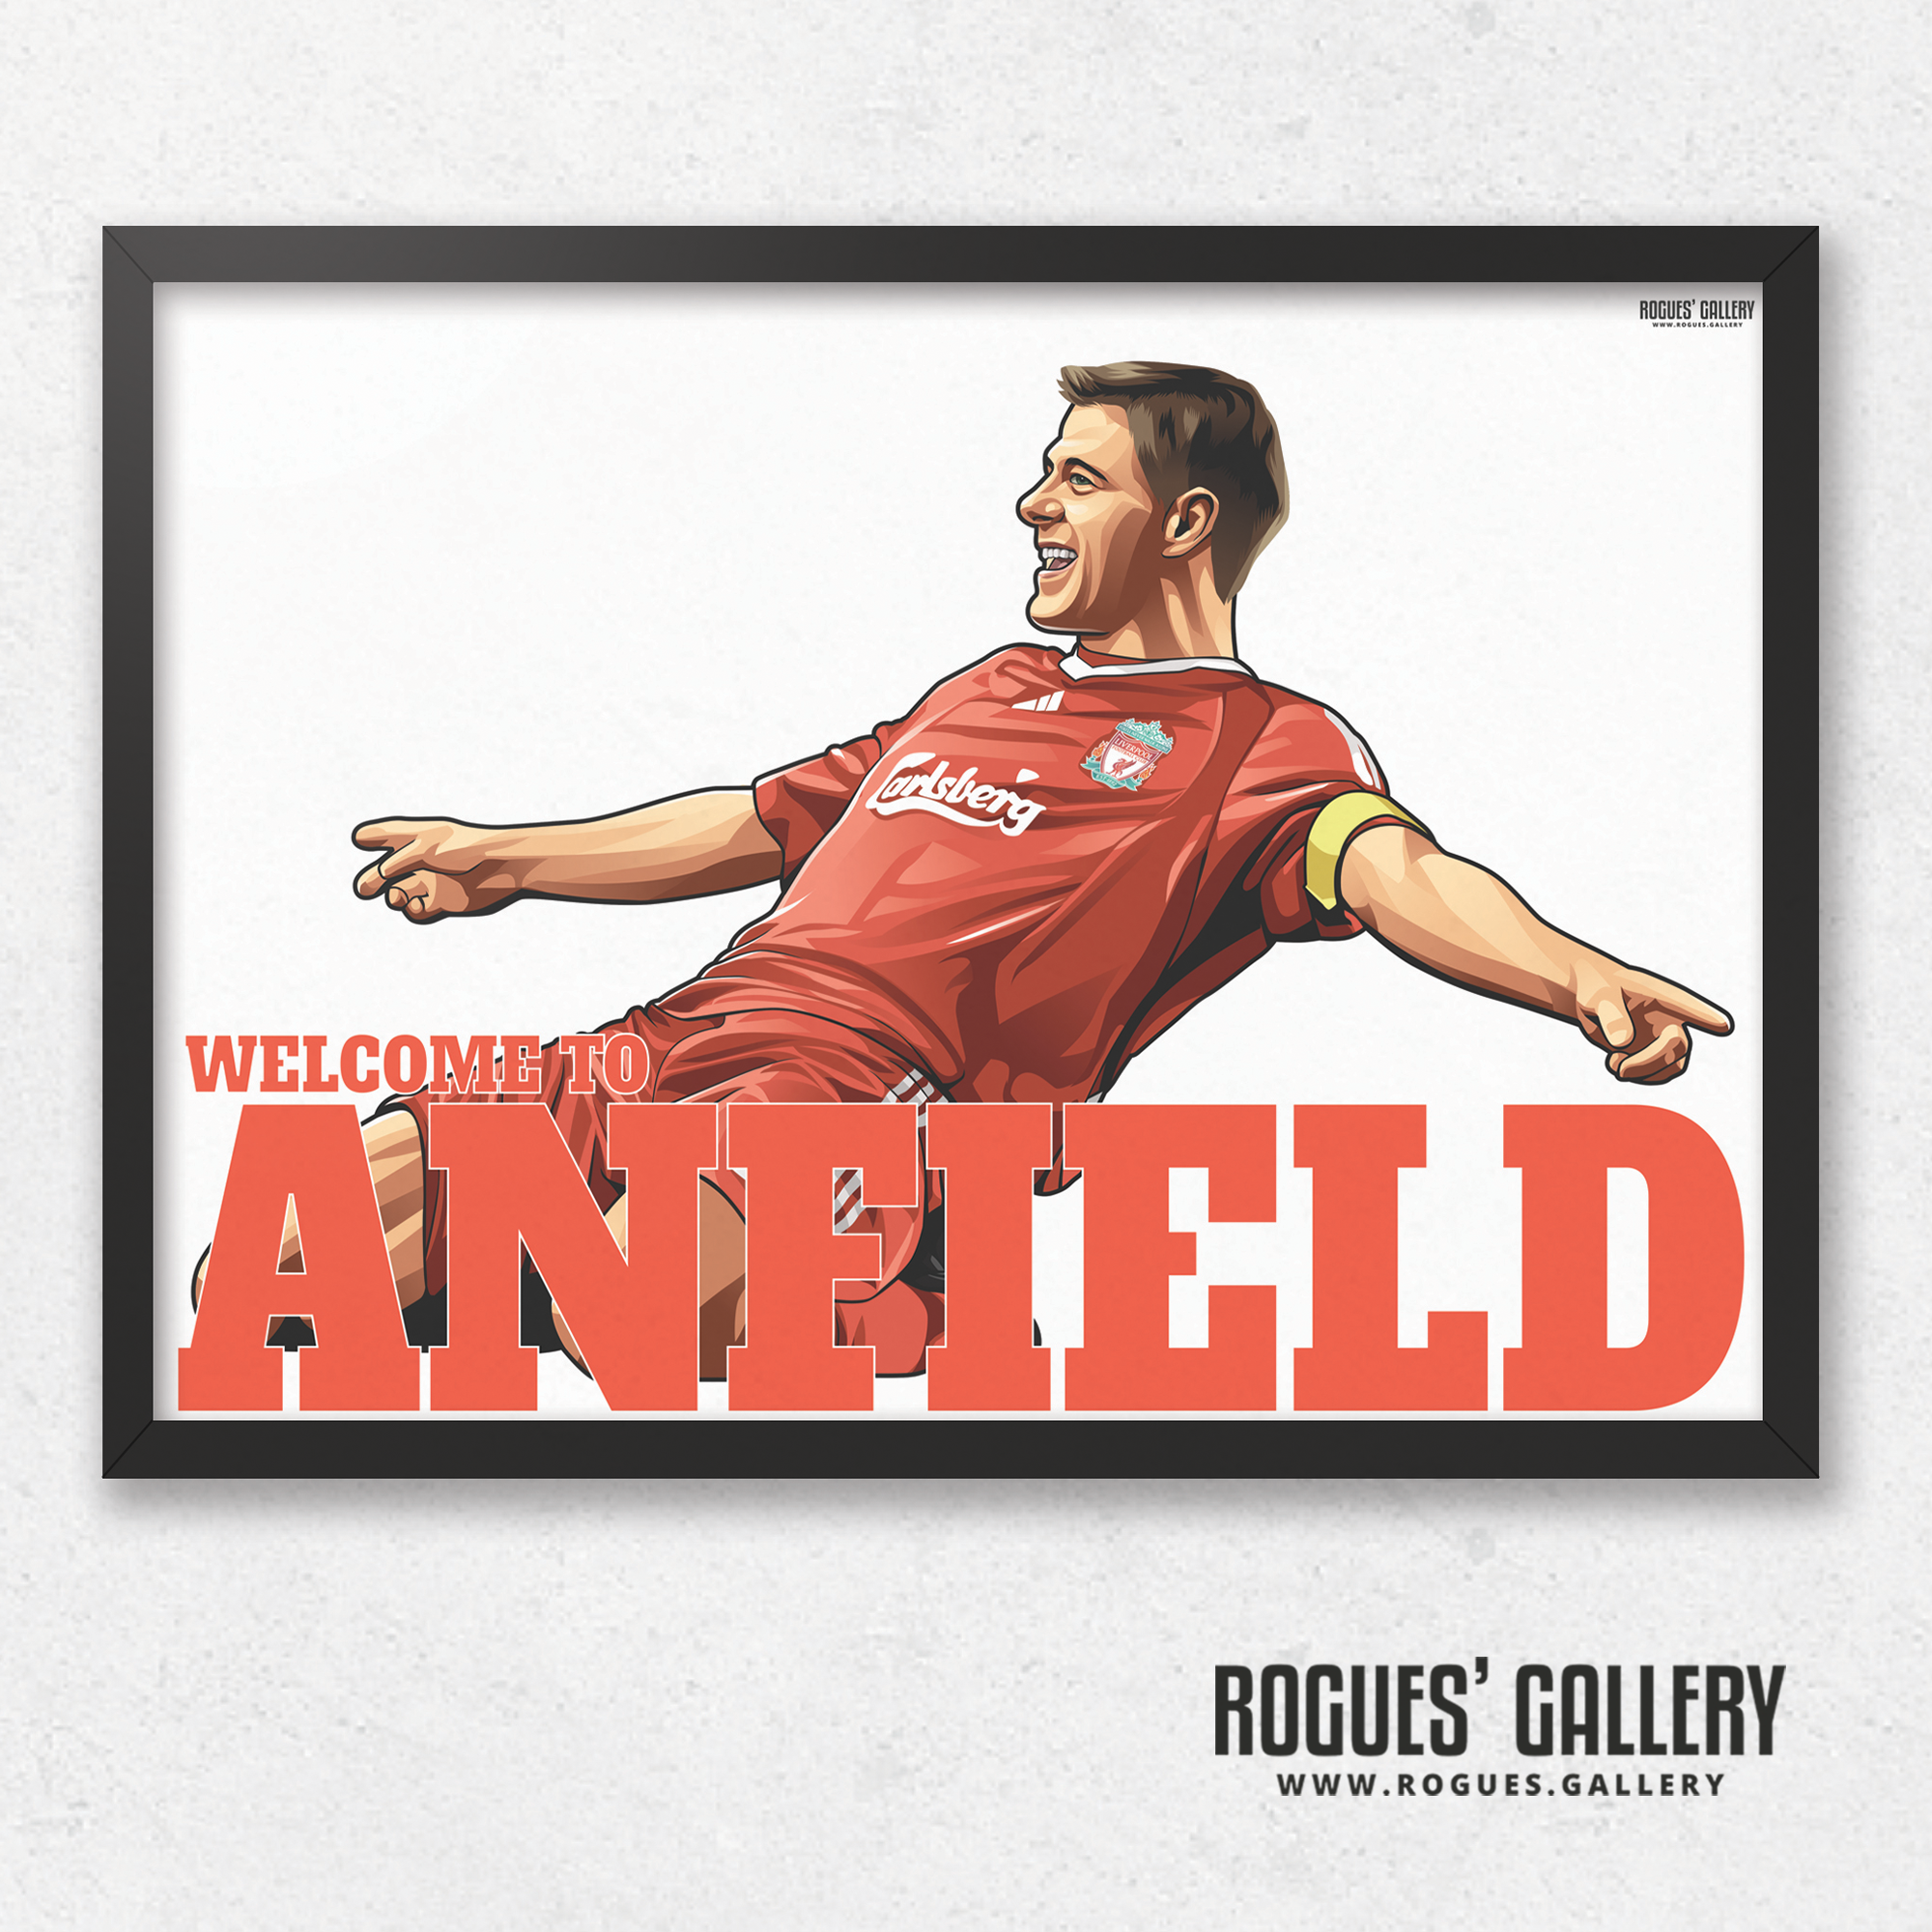 Steven Gerrard Liverpool FC LFC captain midfielder The Kop England Three lions Welcome To Anfield A3 Print